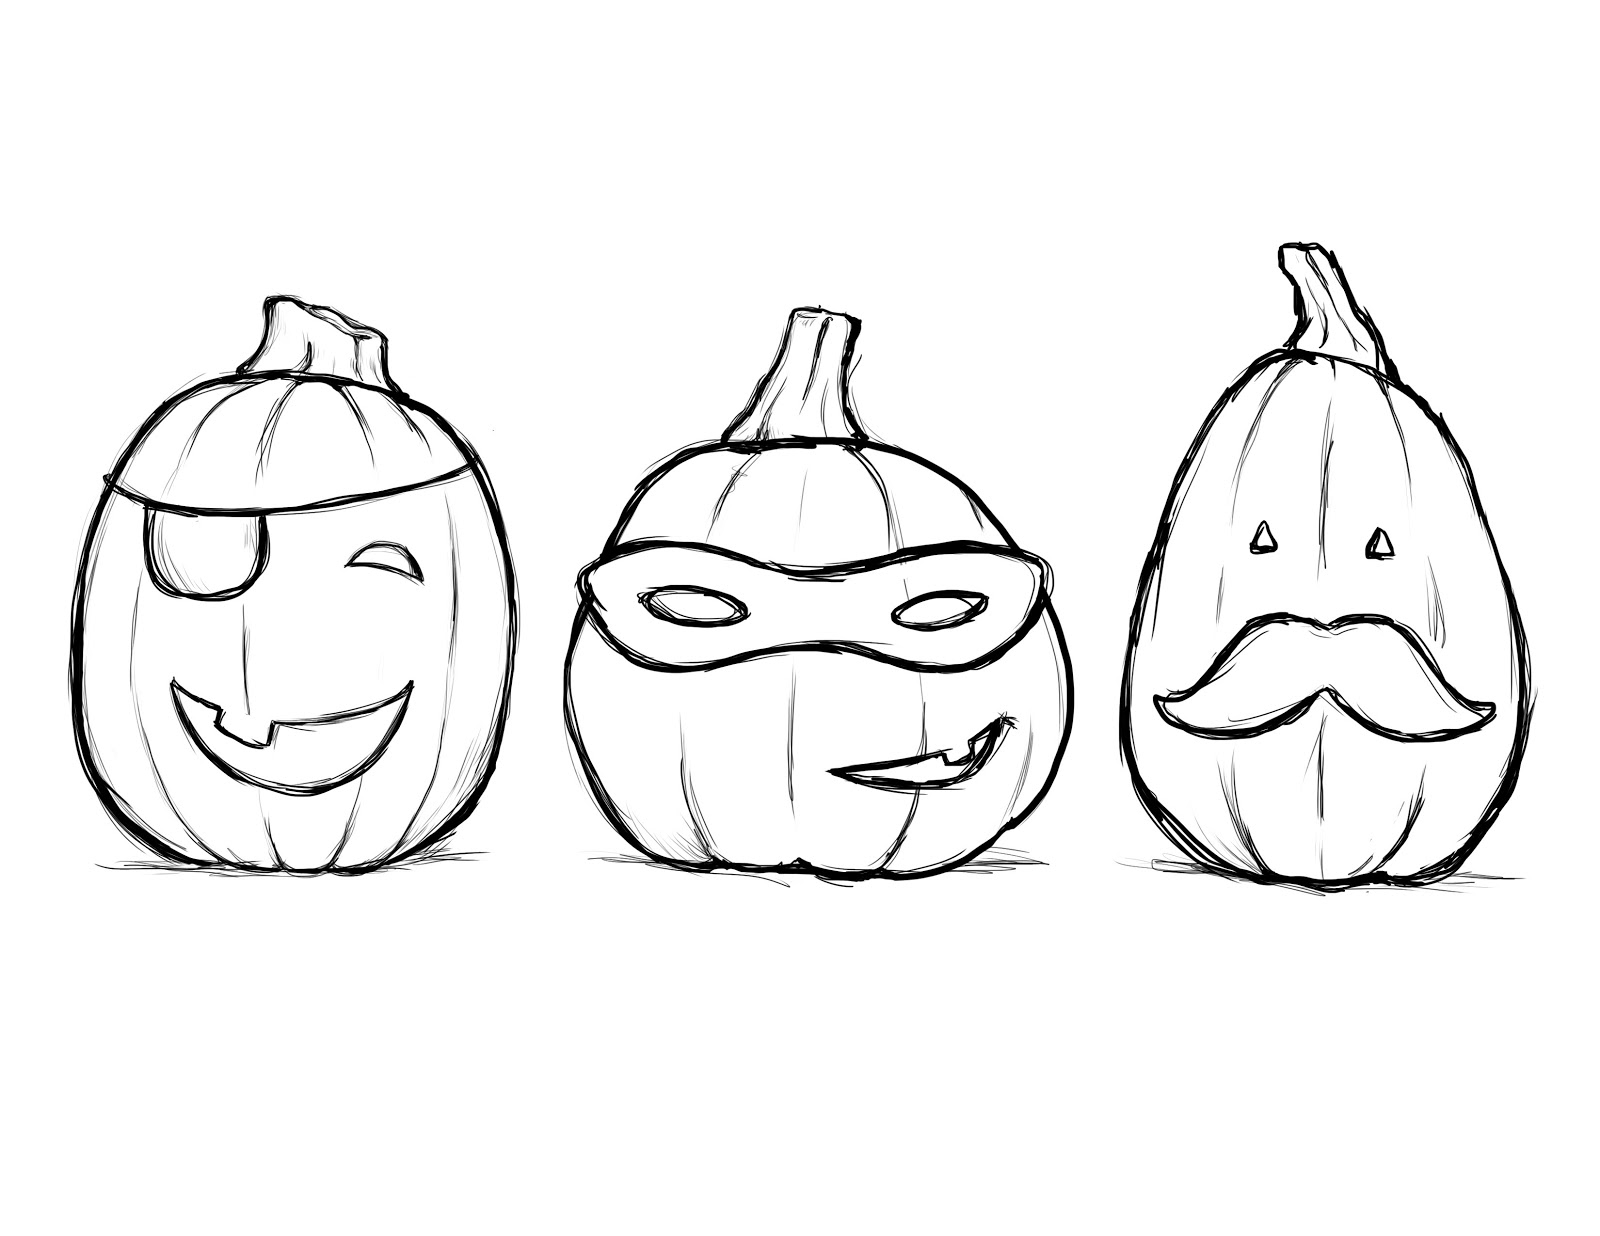 Halloween Pumpkin Coloring Pages Printables Pumpkin Coloring Pages For Kids At Getdrawings Free For